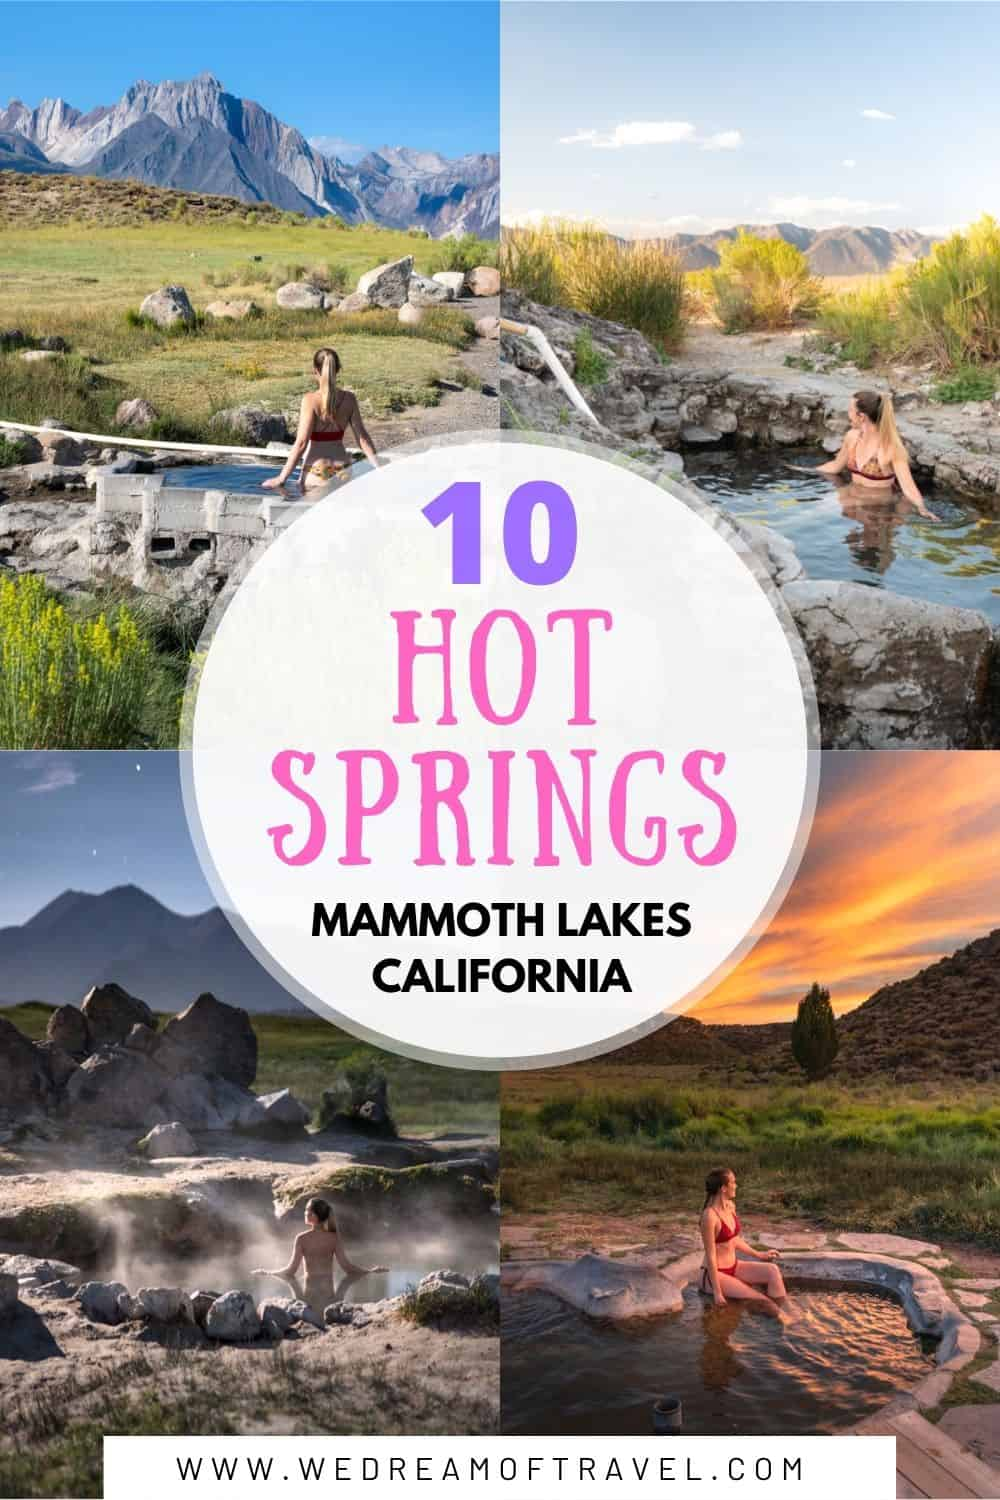 There are many secret hot springs in Mammoth Lakes and nearby areas in California.  Discover the exact locations, as well as useful information for responsibly visiting these geothermal wonders.   Mammoth Lakes California   Mammoth Lakes Hot Springs   California Hot Springs